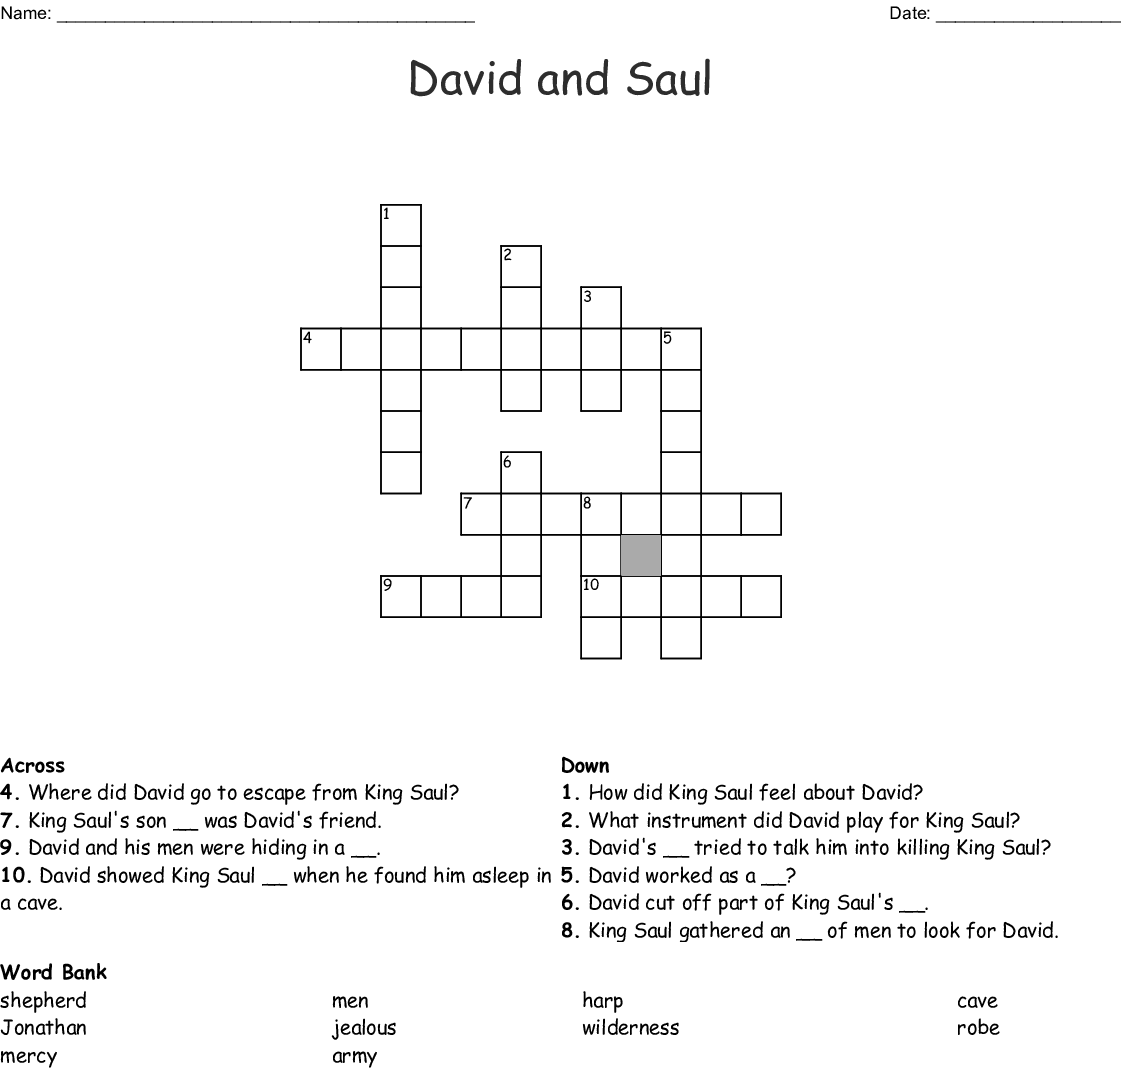 David And Saul Word Search